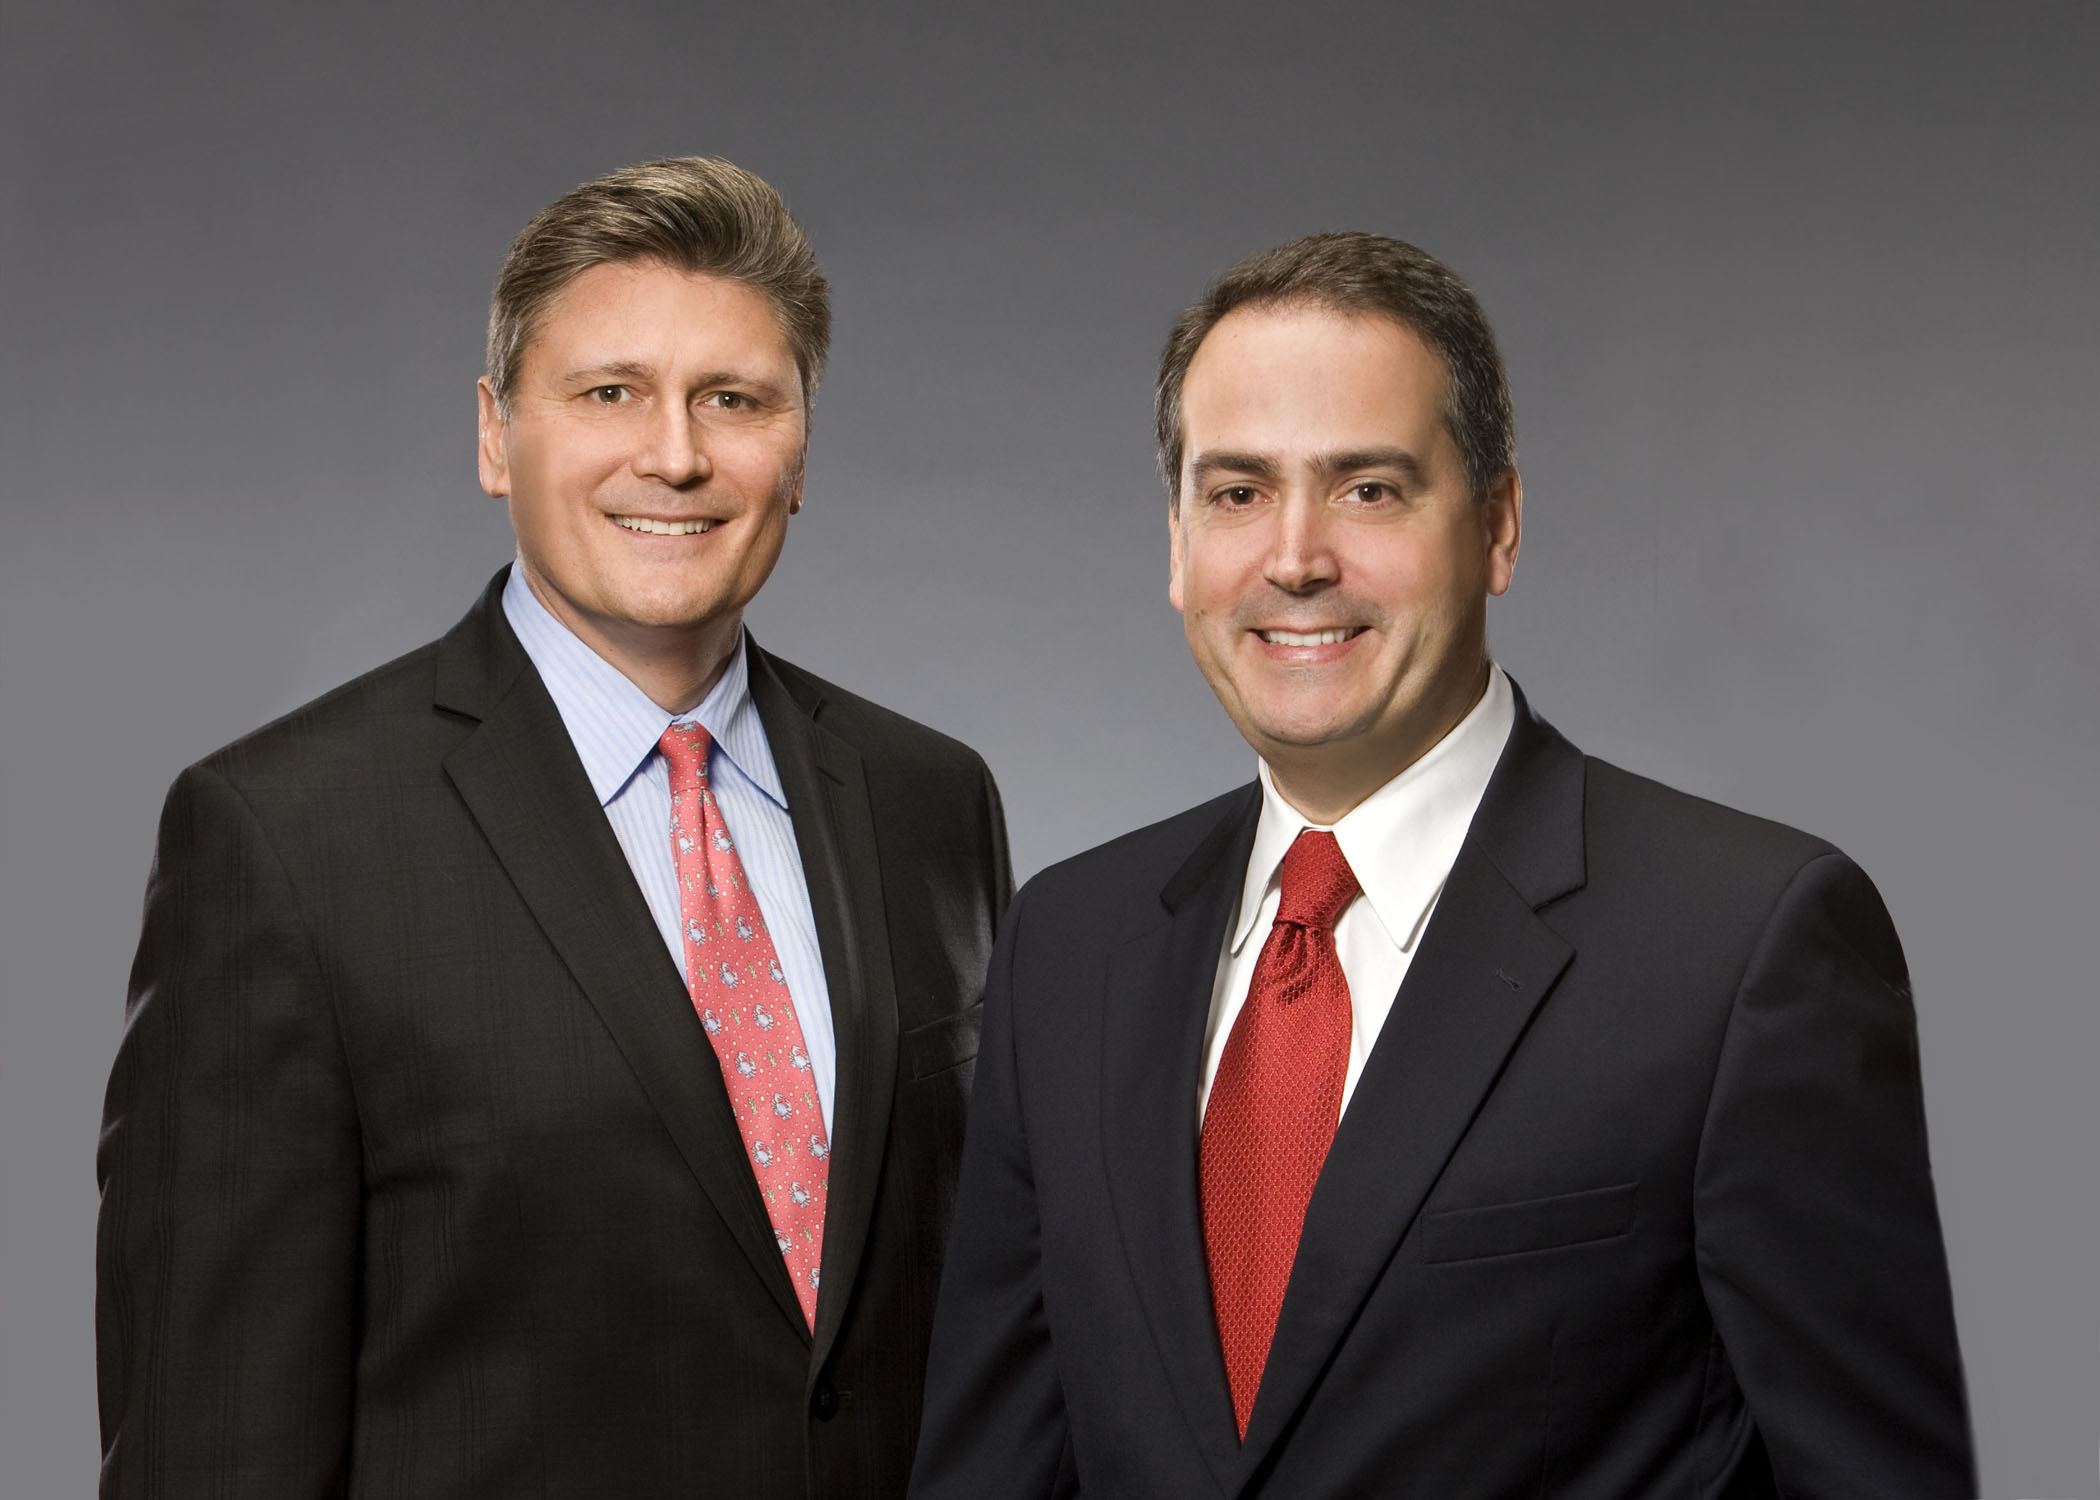 Attorneys Gil Shelsby and Robert Leoni